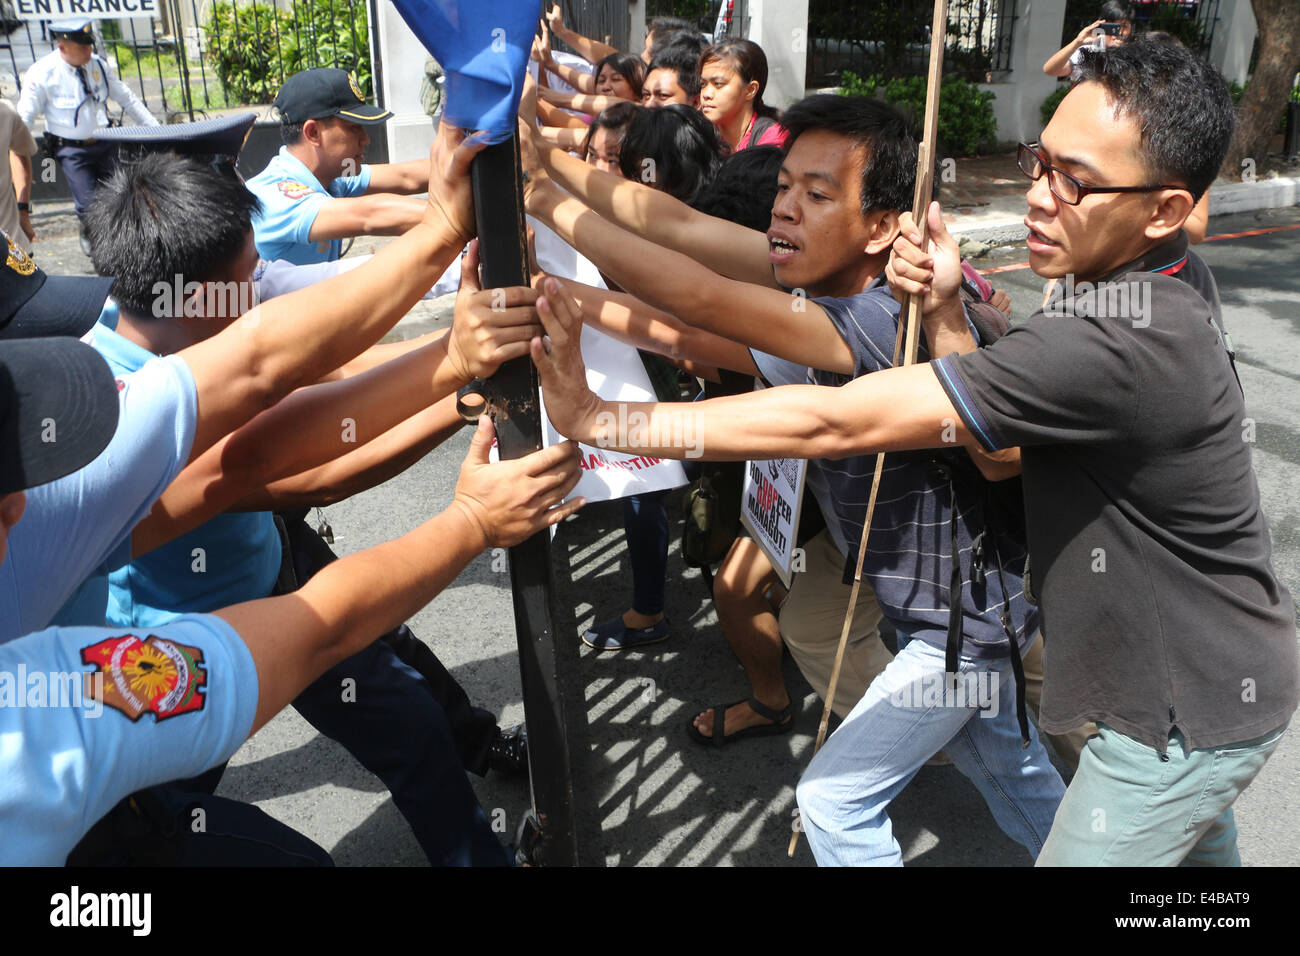 immediate resignation letter call center philippines eastern visayas stock photos amp eastern visayas stock 26298 | manila philippines 8th july 2014 relatives and supporters of survivors E4BAT9